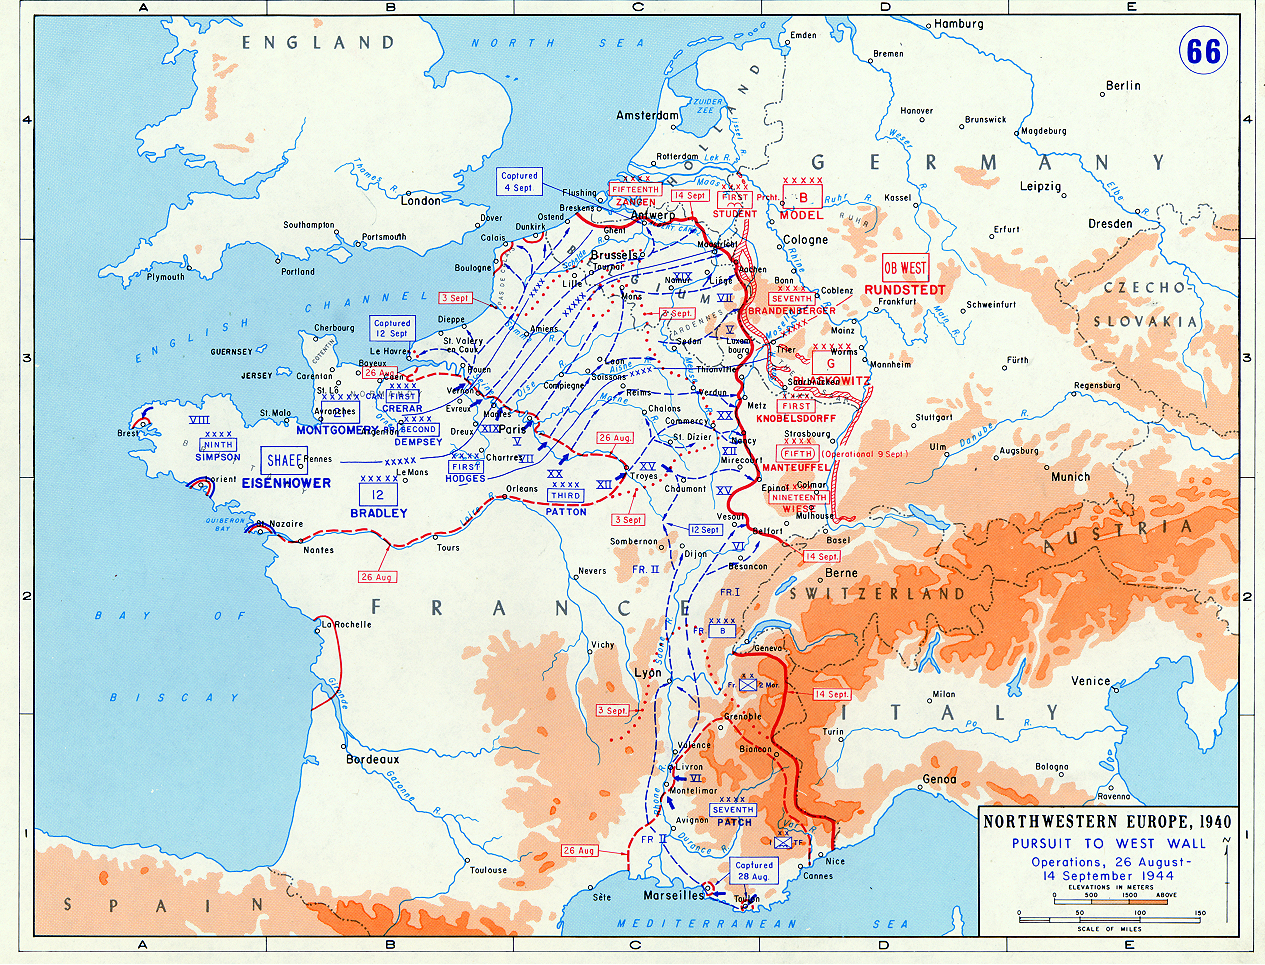 Map of Allied Pursuit ...